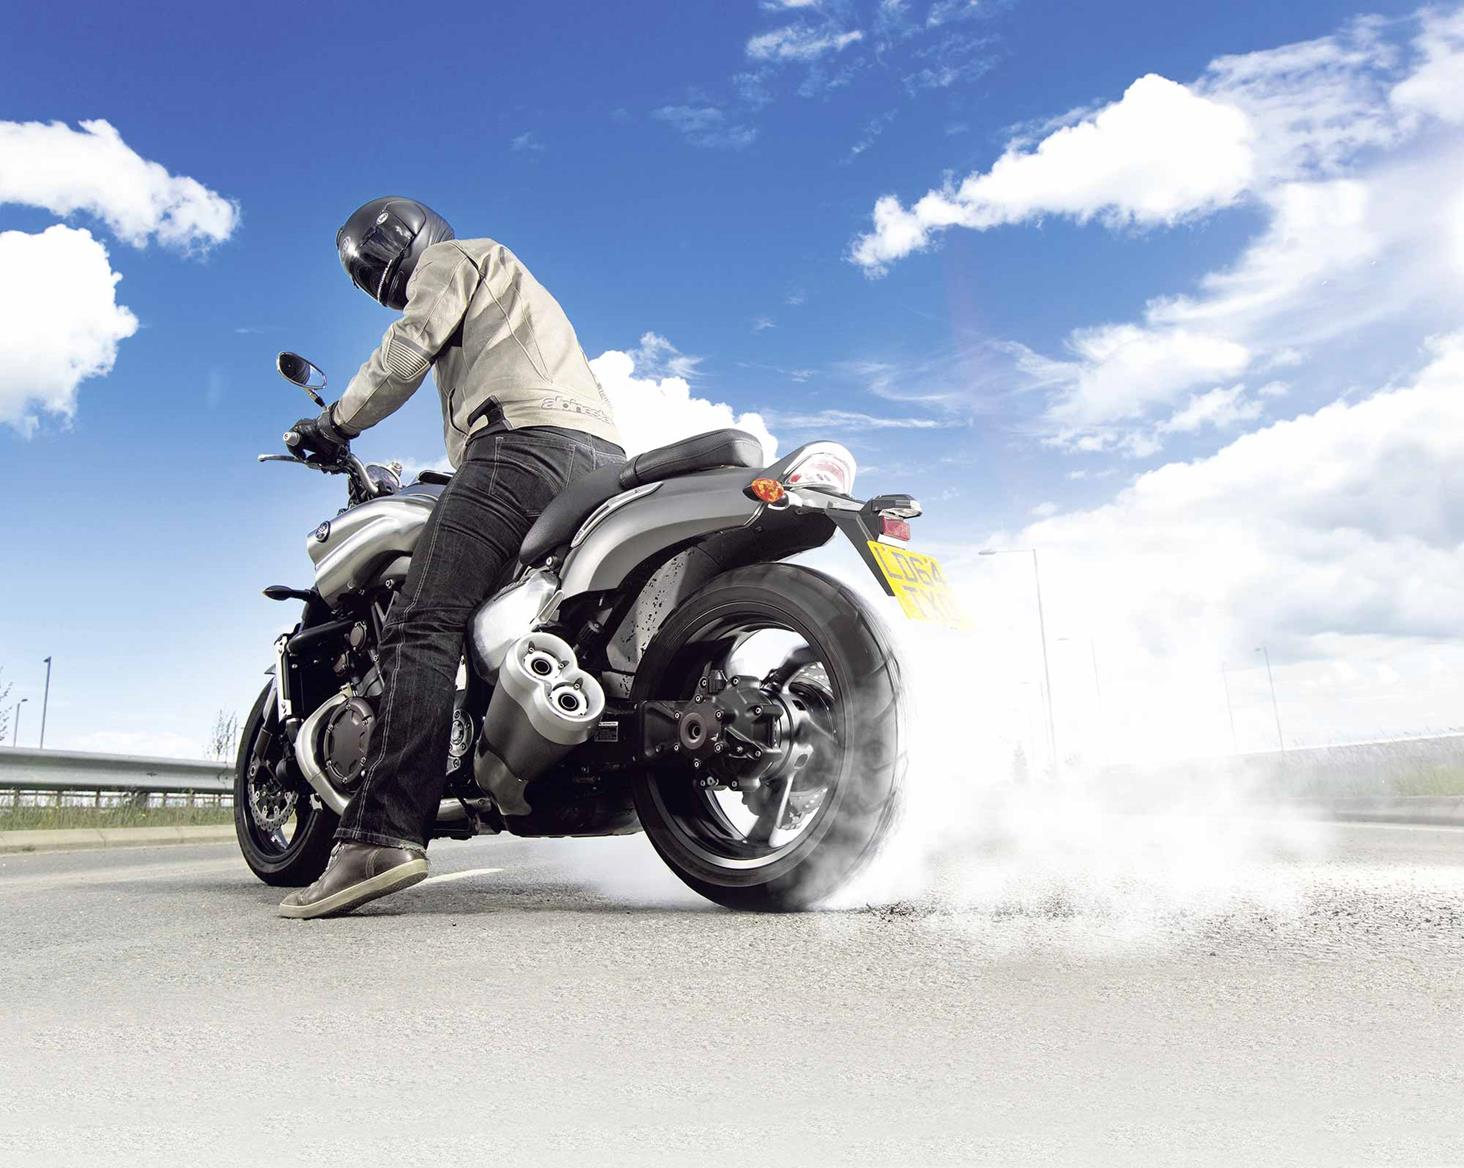 Doing a burnout on the Yamaha VMAX